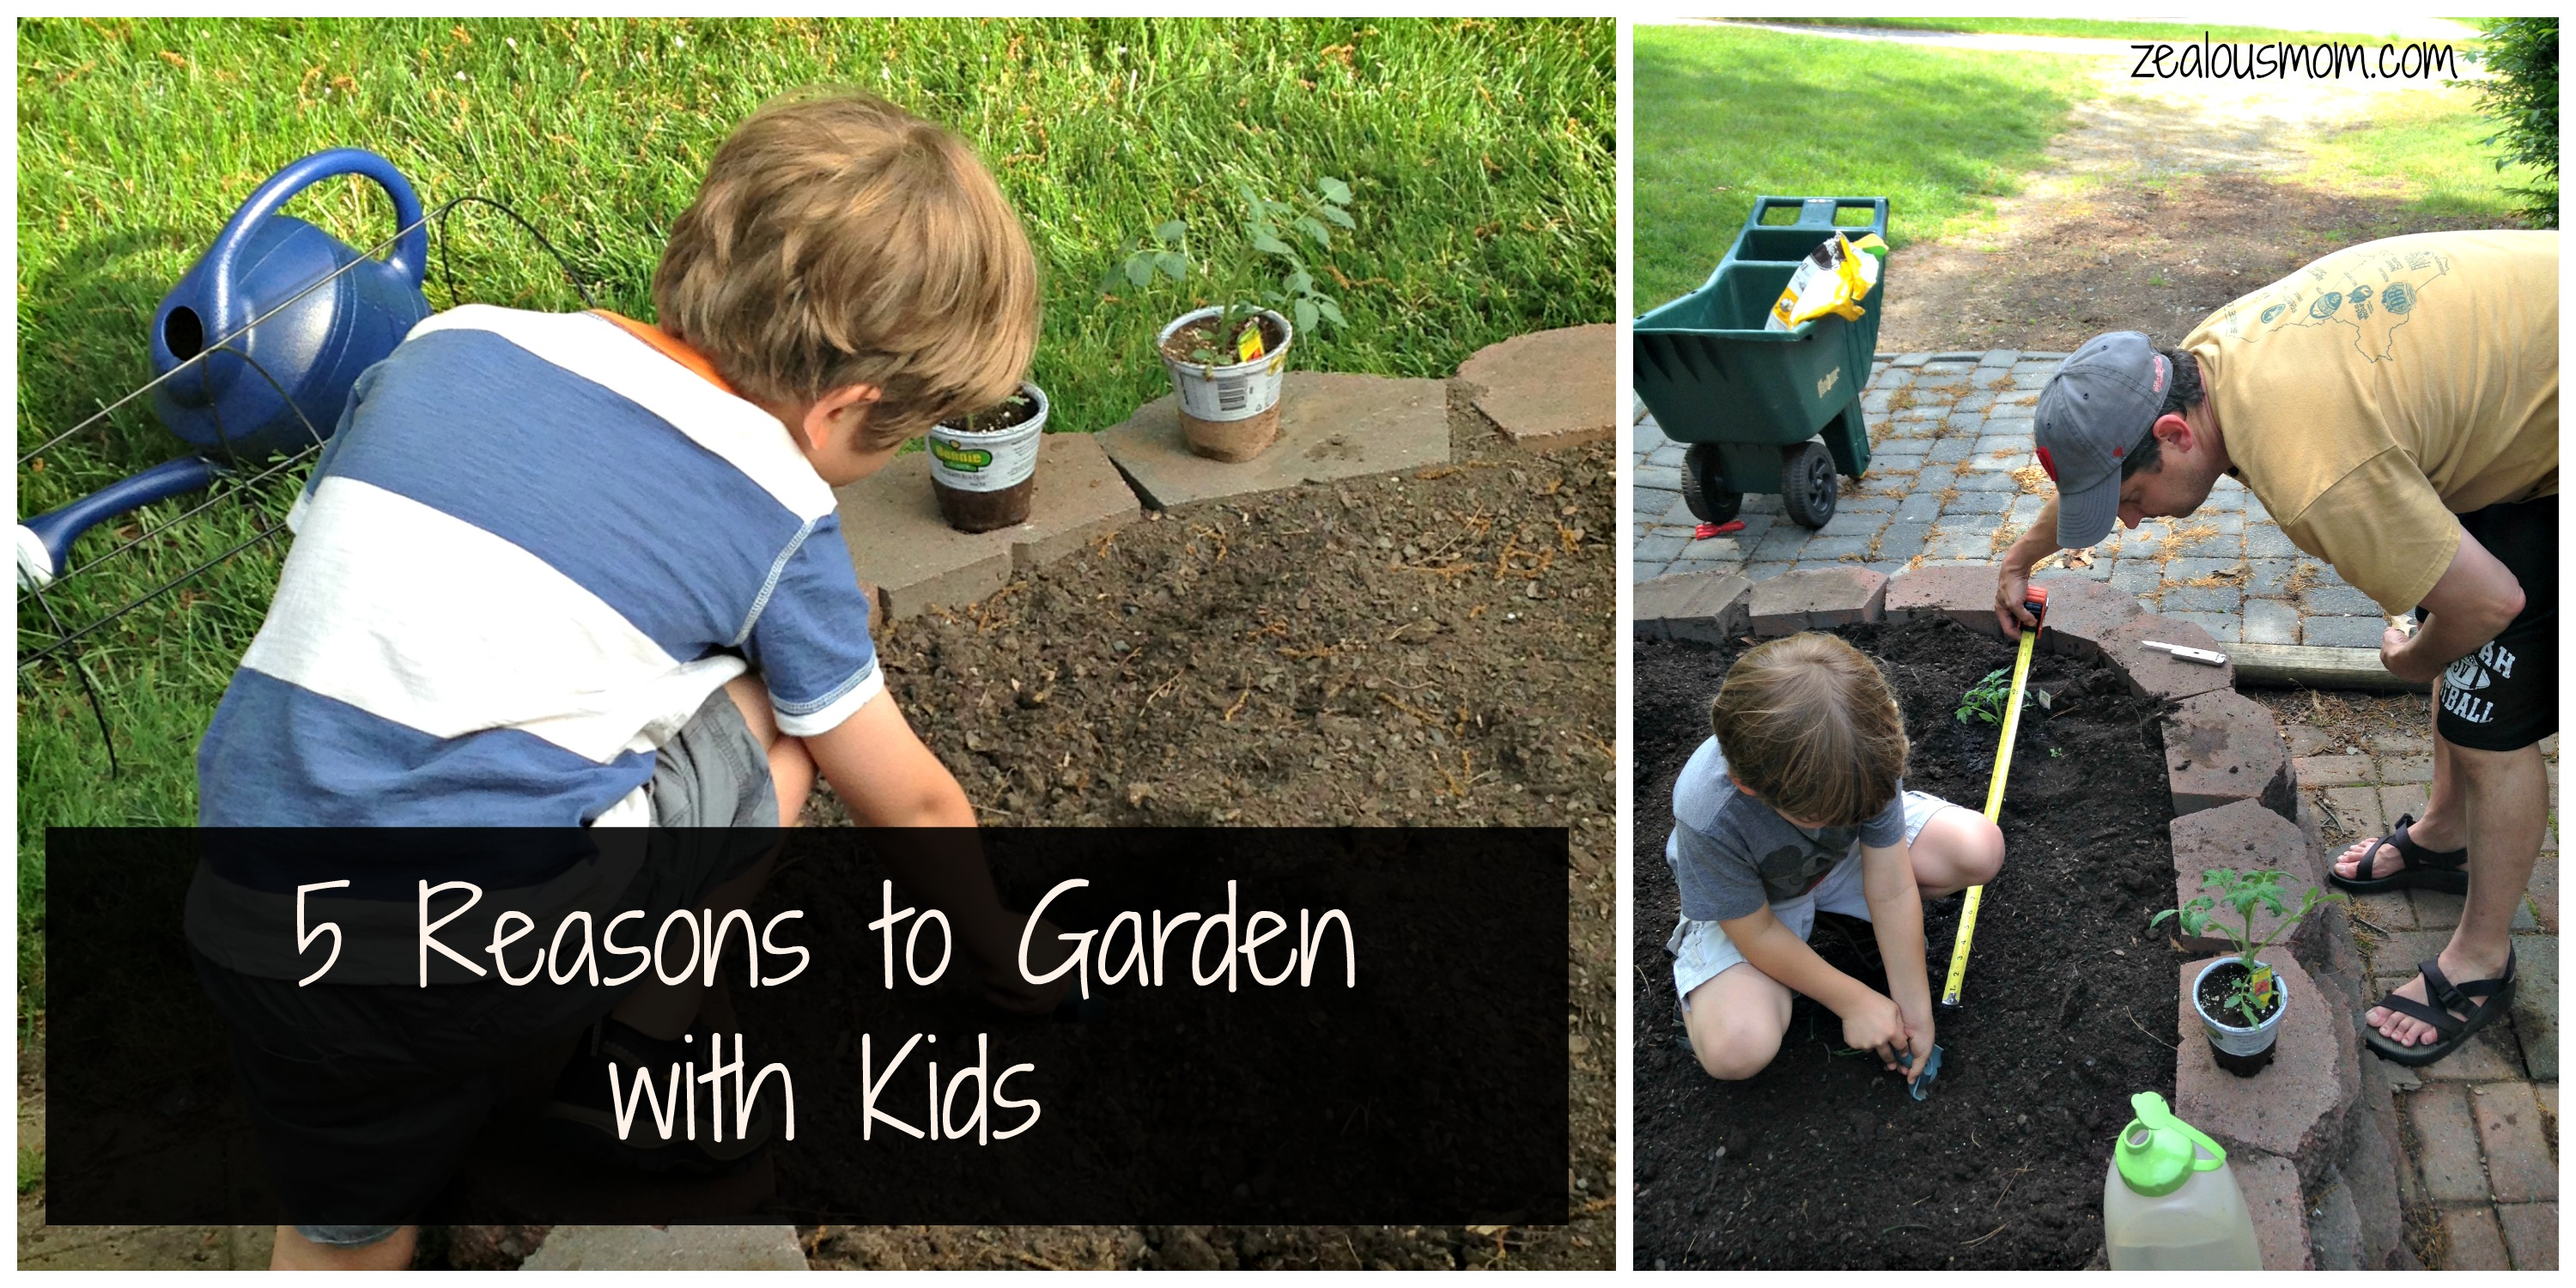 5 Reasons to Garden with Kids